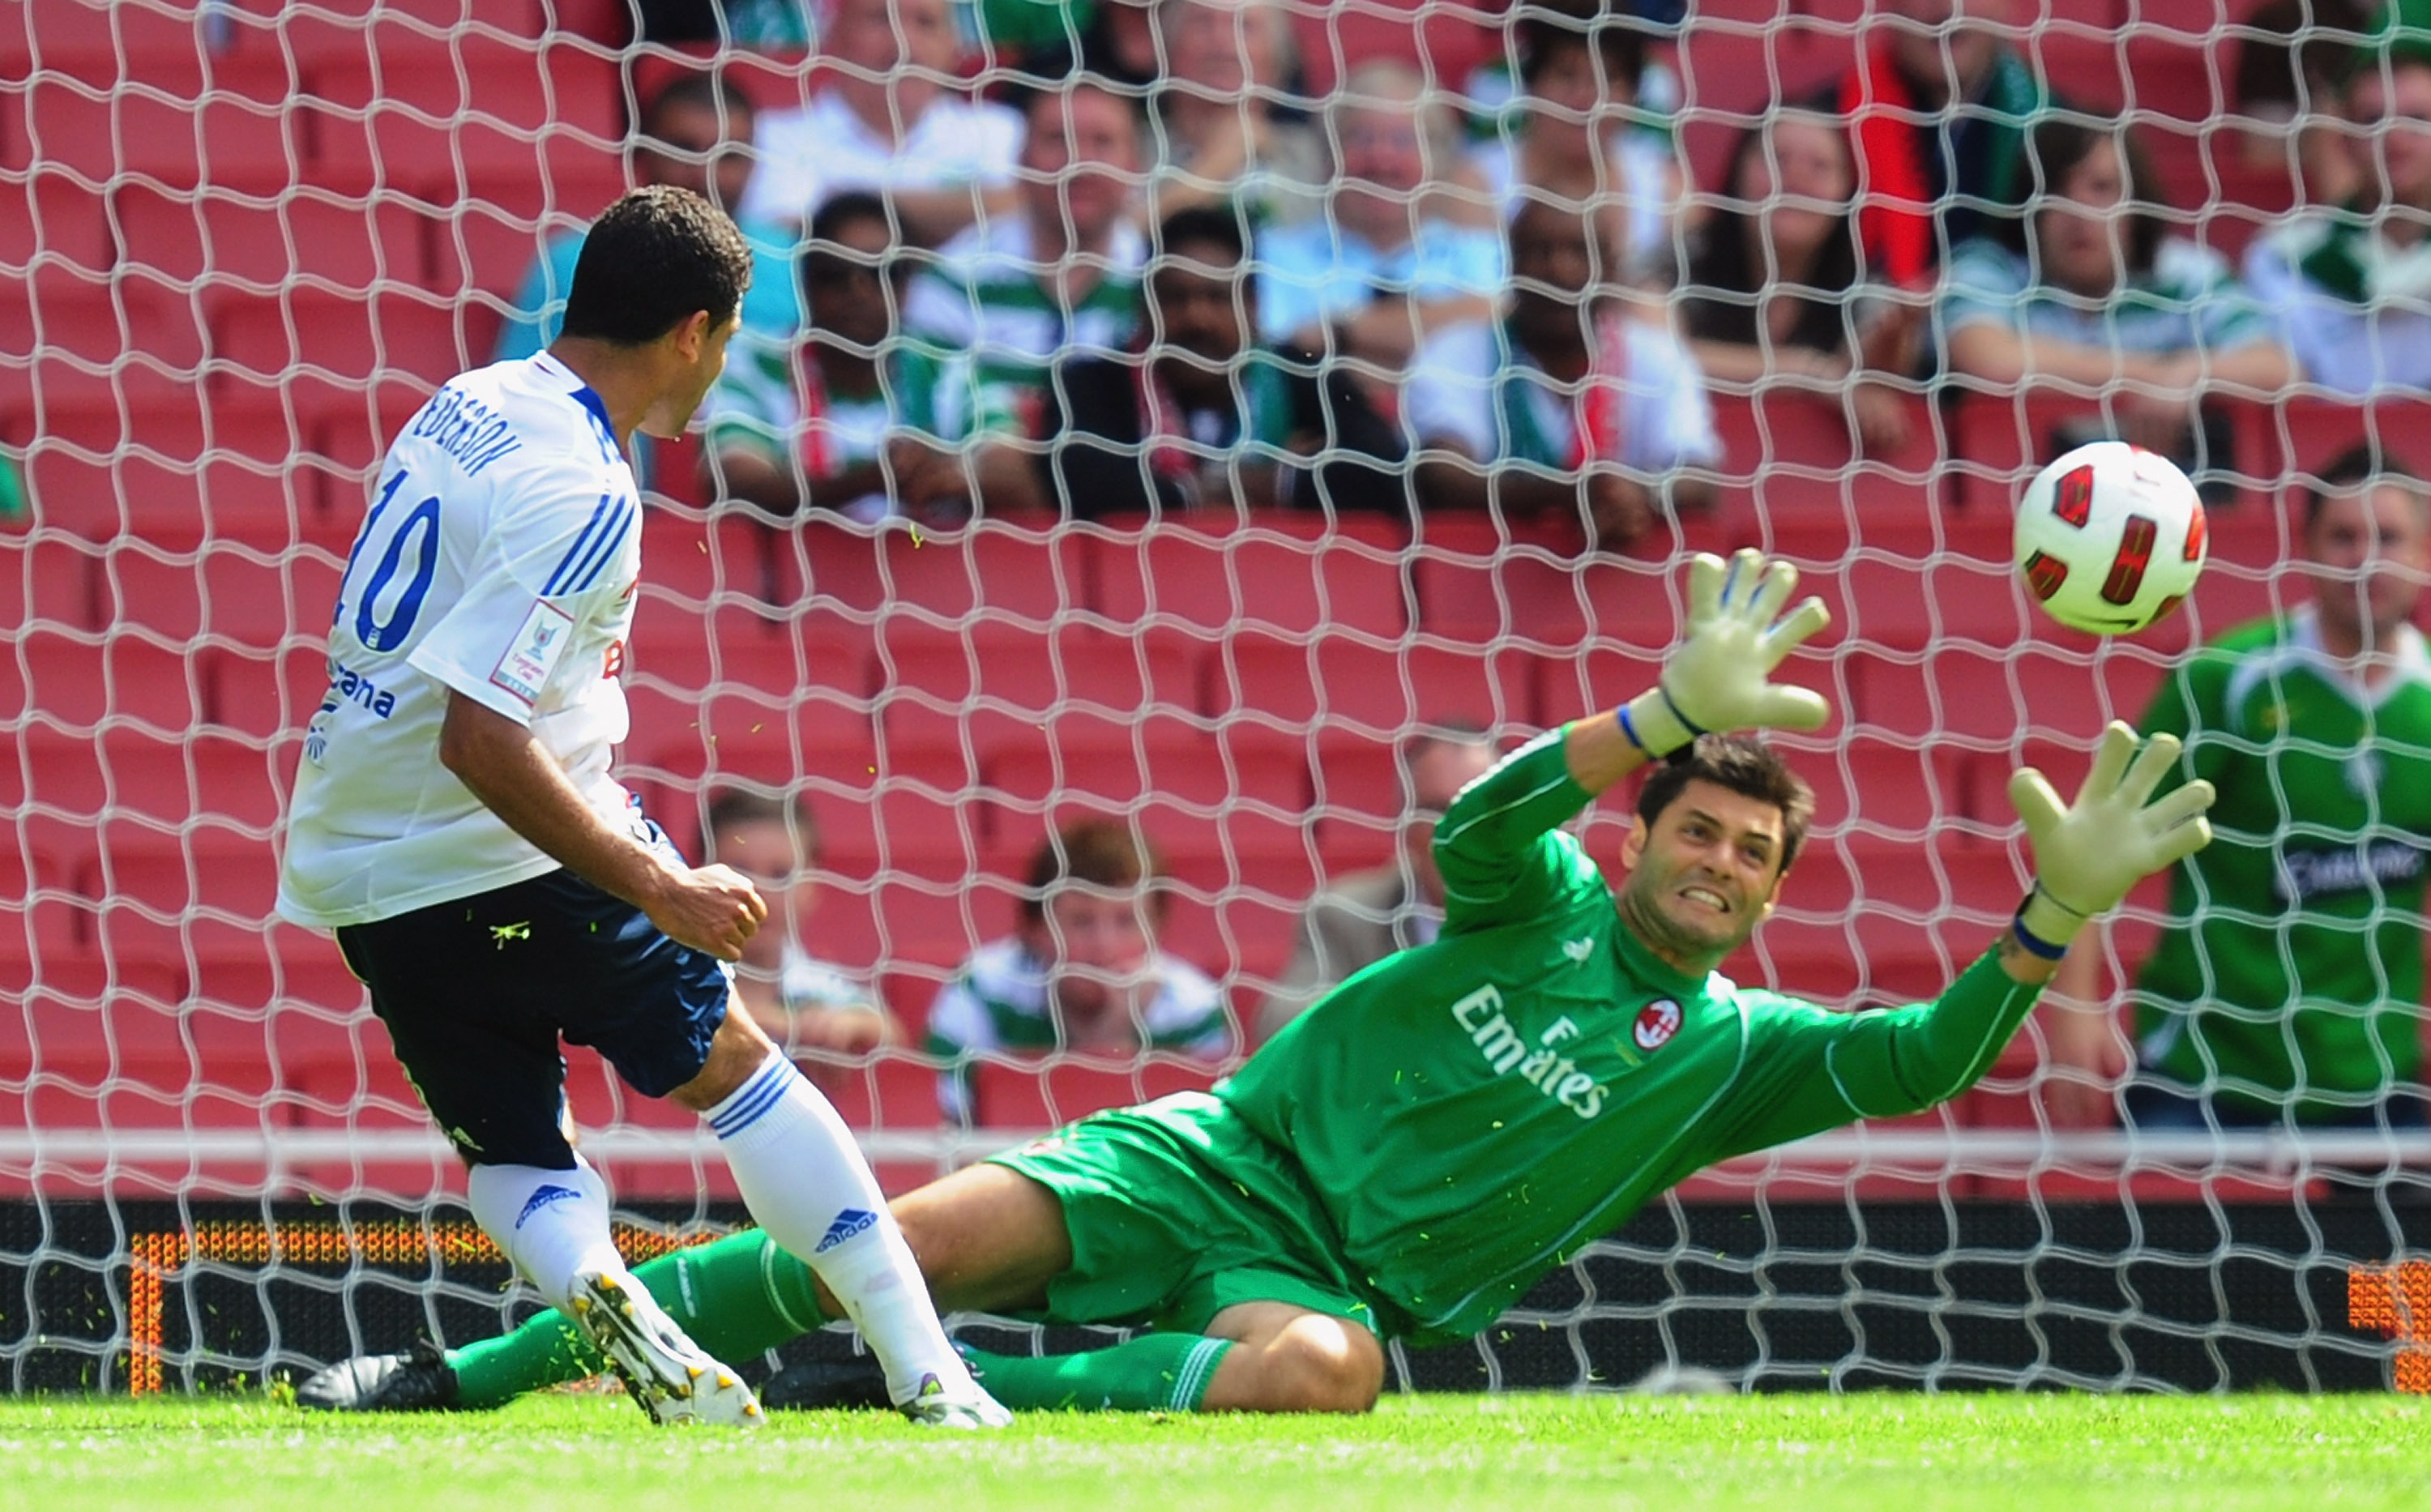 LONDON, ENGLAND - AUGUST 01:  Ederson of Lyon hits the bar as Marco Amelia of AC Milan dives during the Emirates Cup match between AC Milan and Lyon at Emirates Stadium on August 1, 2010 in London, England.  (Photo by Mike Hewitt/Getty Images)